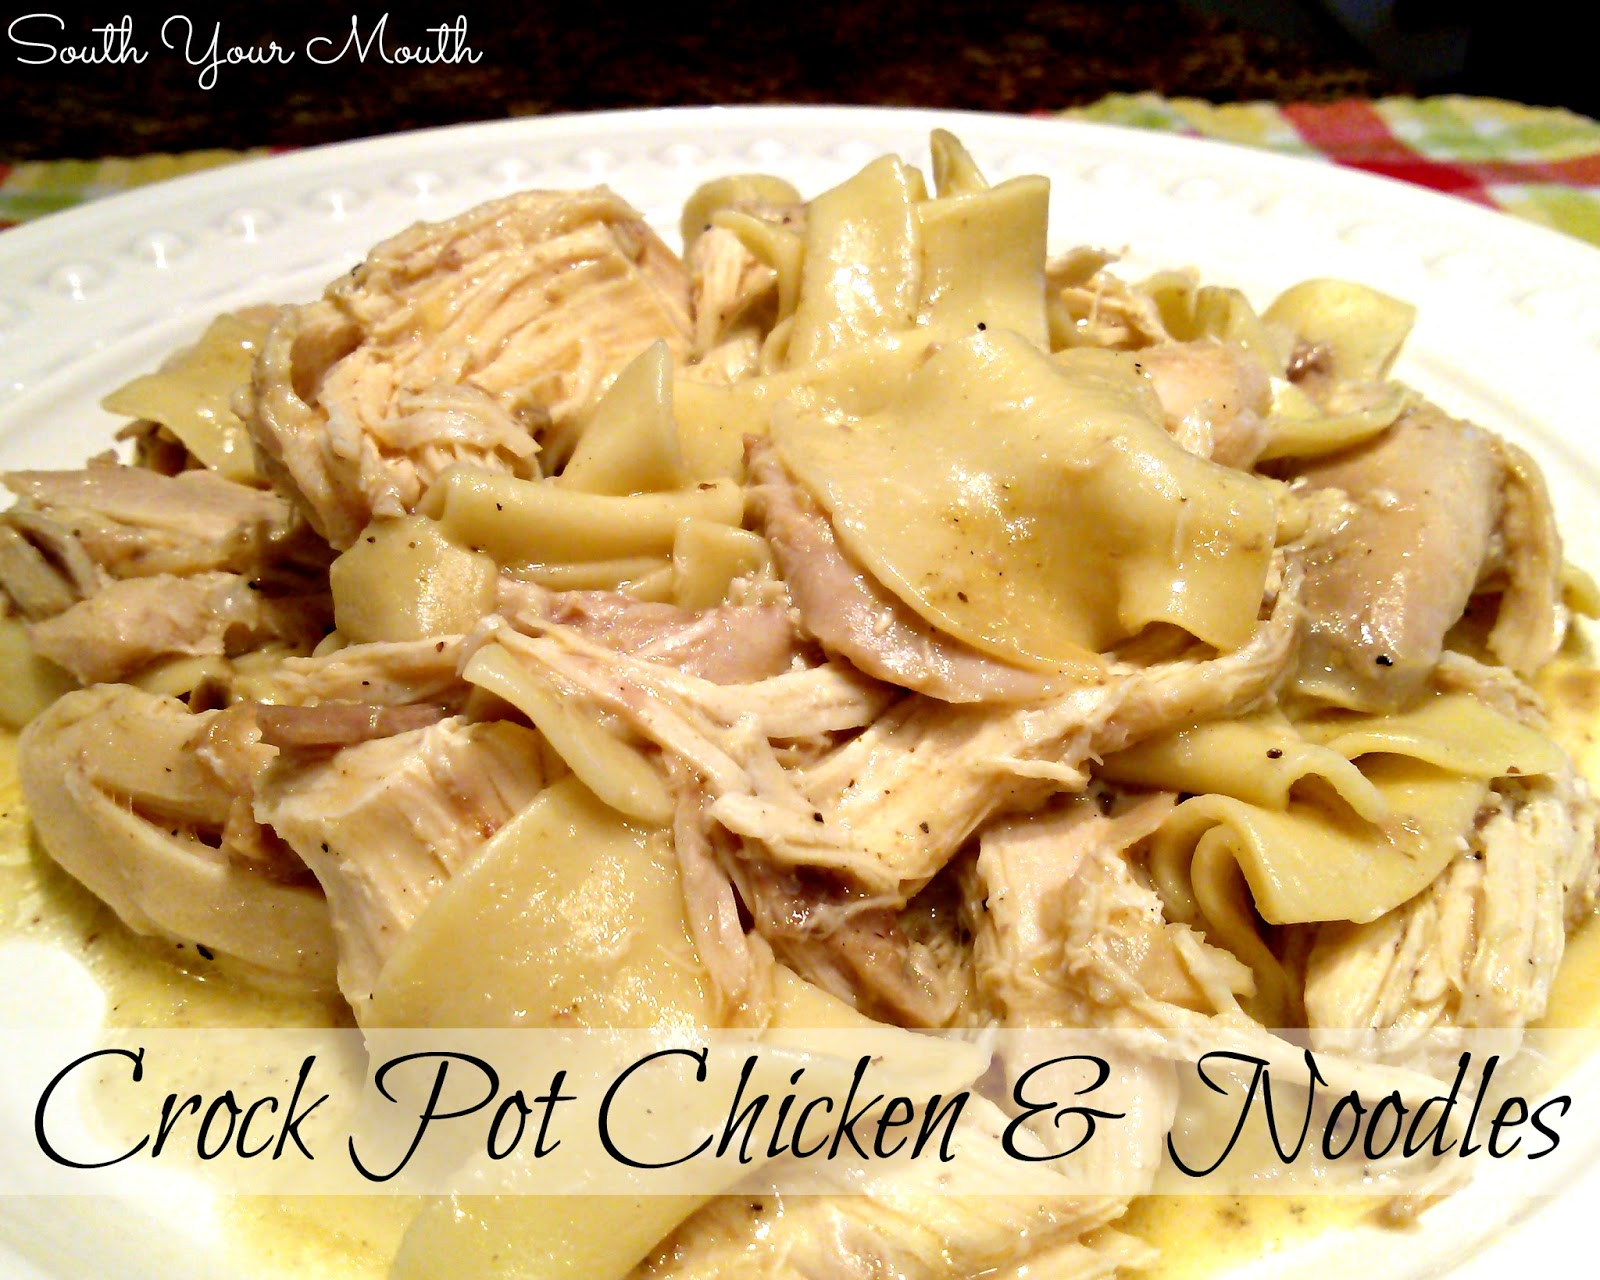 South Your Mouth: Crock Pot Chicken and Noodles